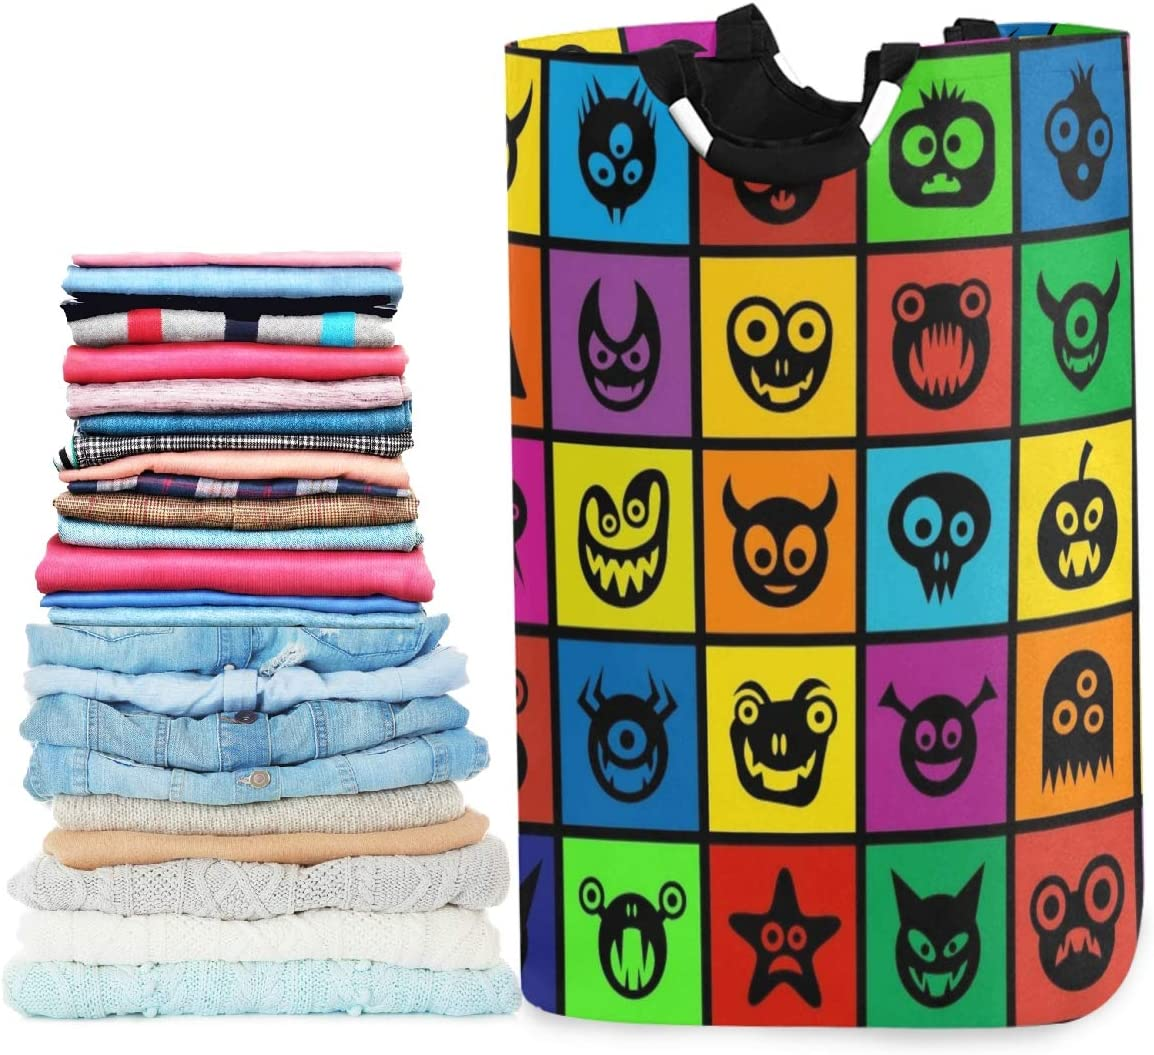 visesunny Collapsible Laundry Basket Funny Colorful Monster Large Laundry Hamper Oxford Fabric Dirty Clothes Toy Organizer with Handle for Bathroom Kids Room Dorm